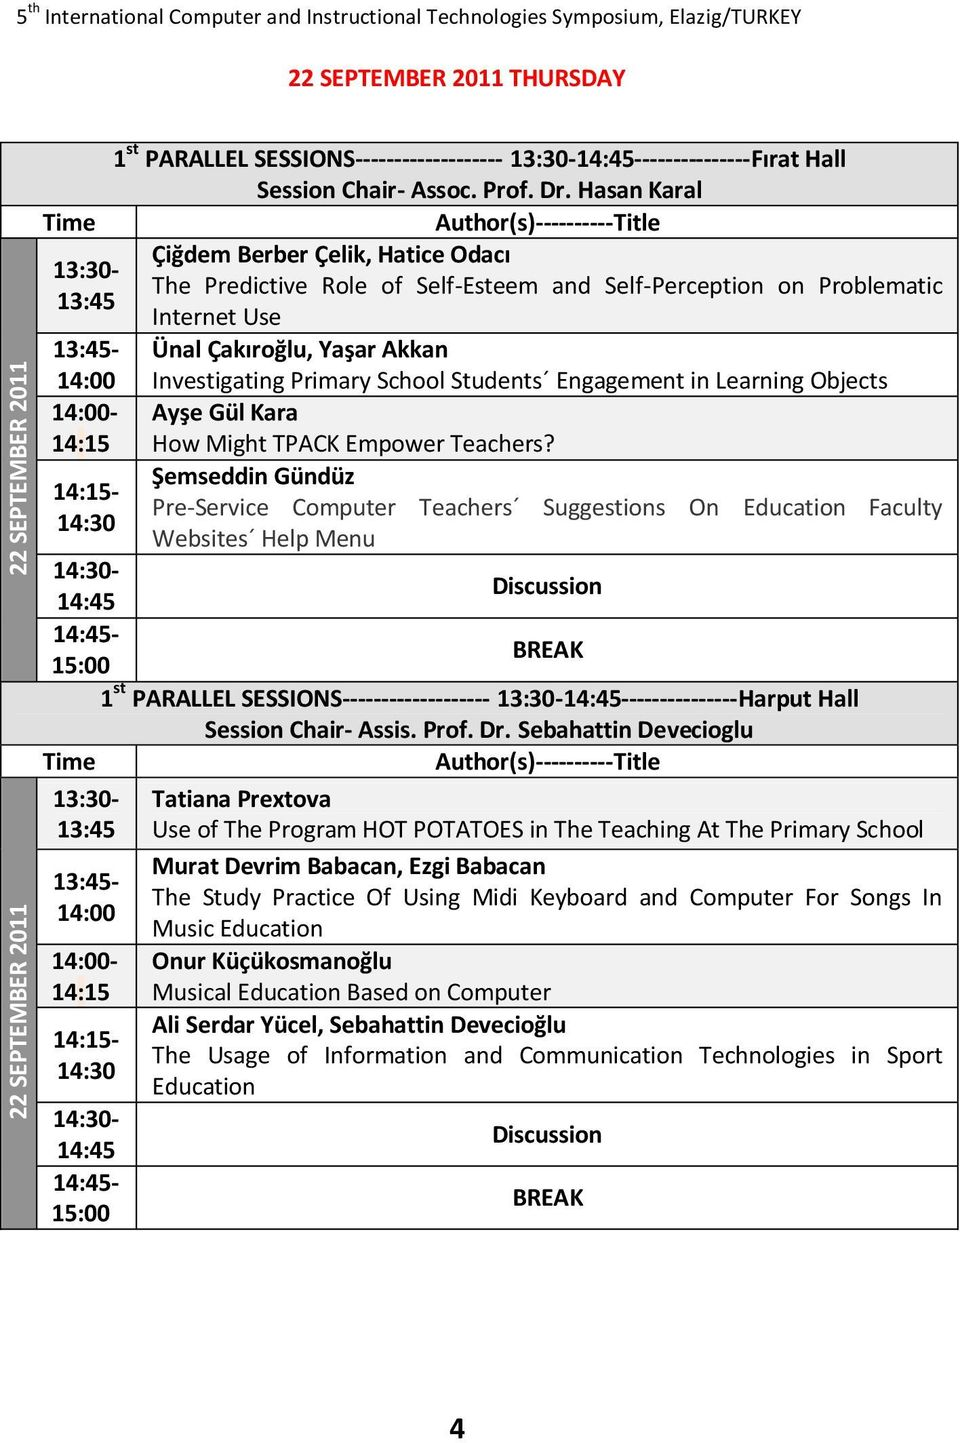 Primary School Students Engagement in Learning Objects 14:00- Ayşe Gül Kara 14:15 How Might TPACK Empower Teachers?